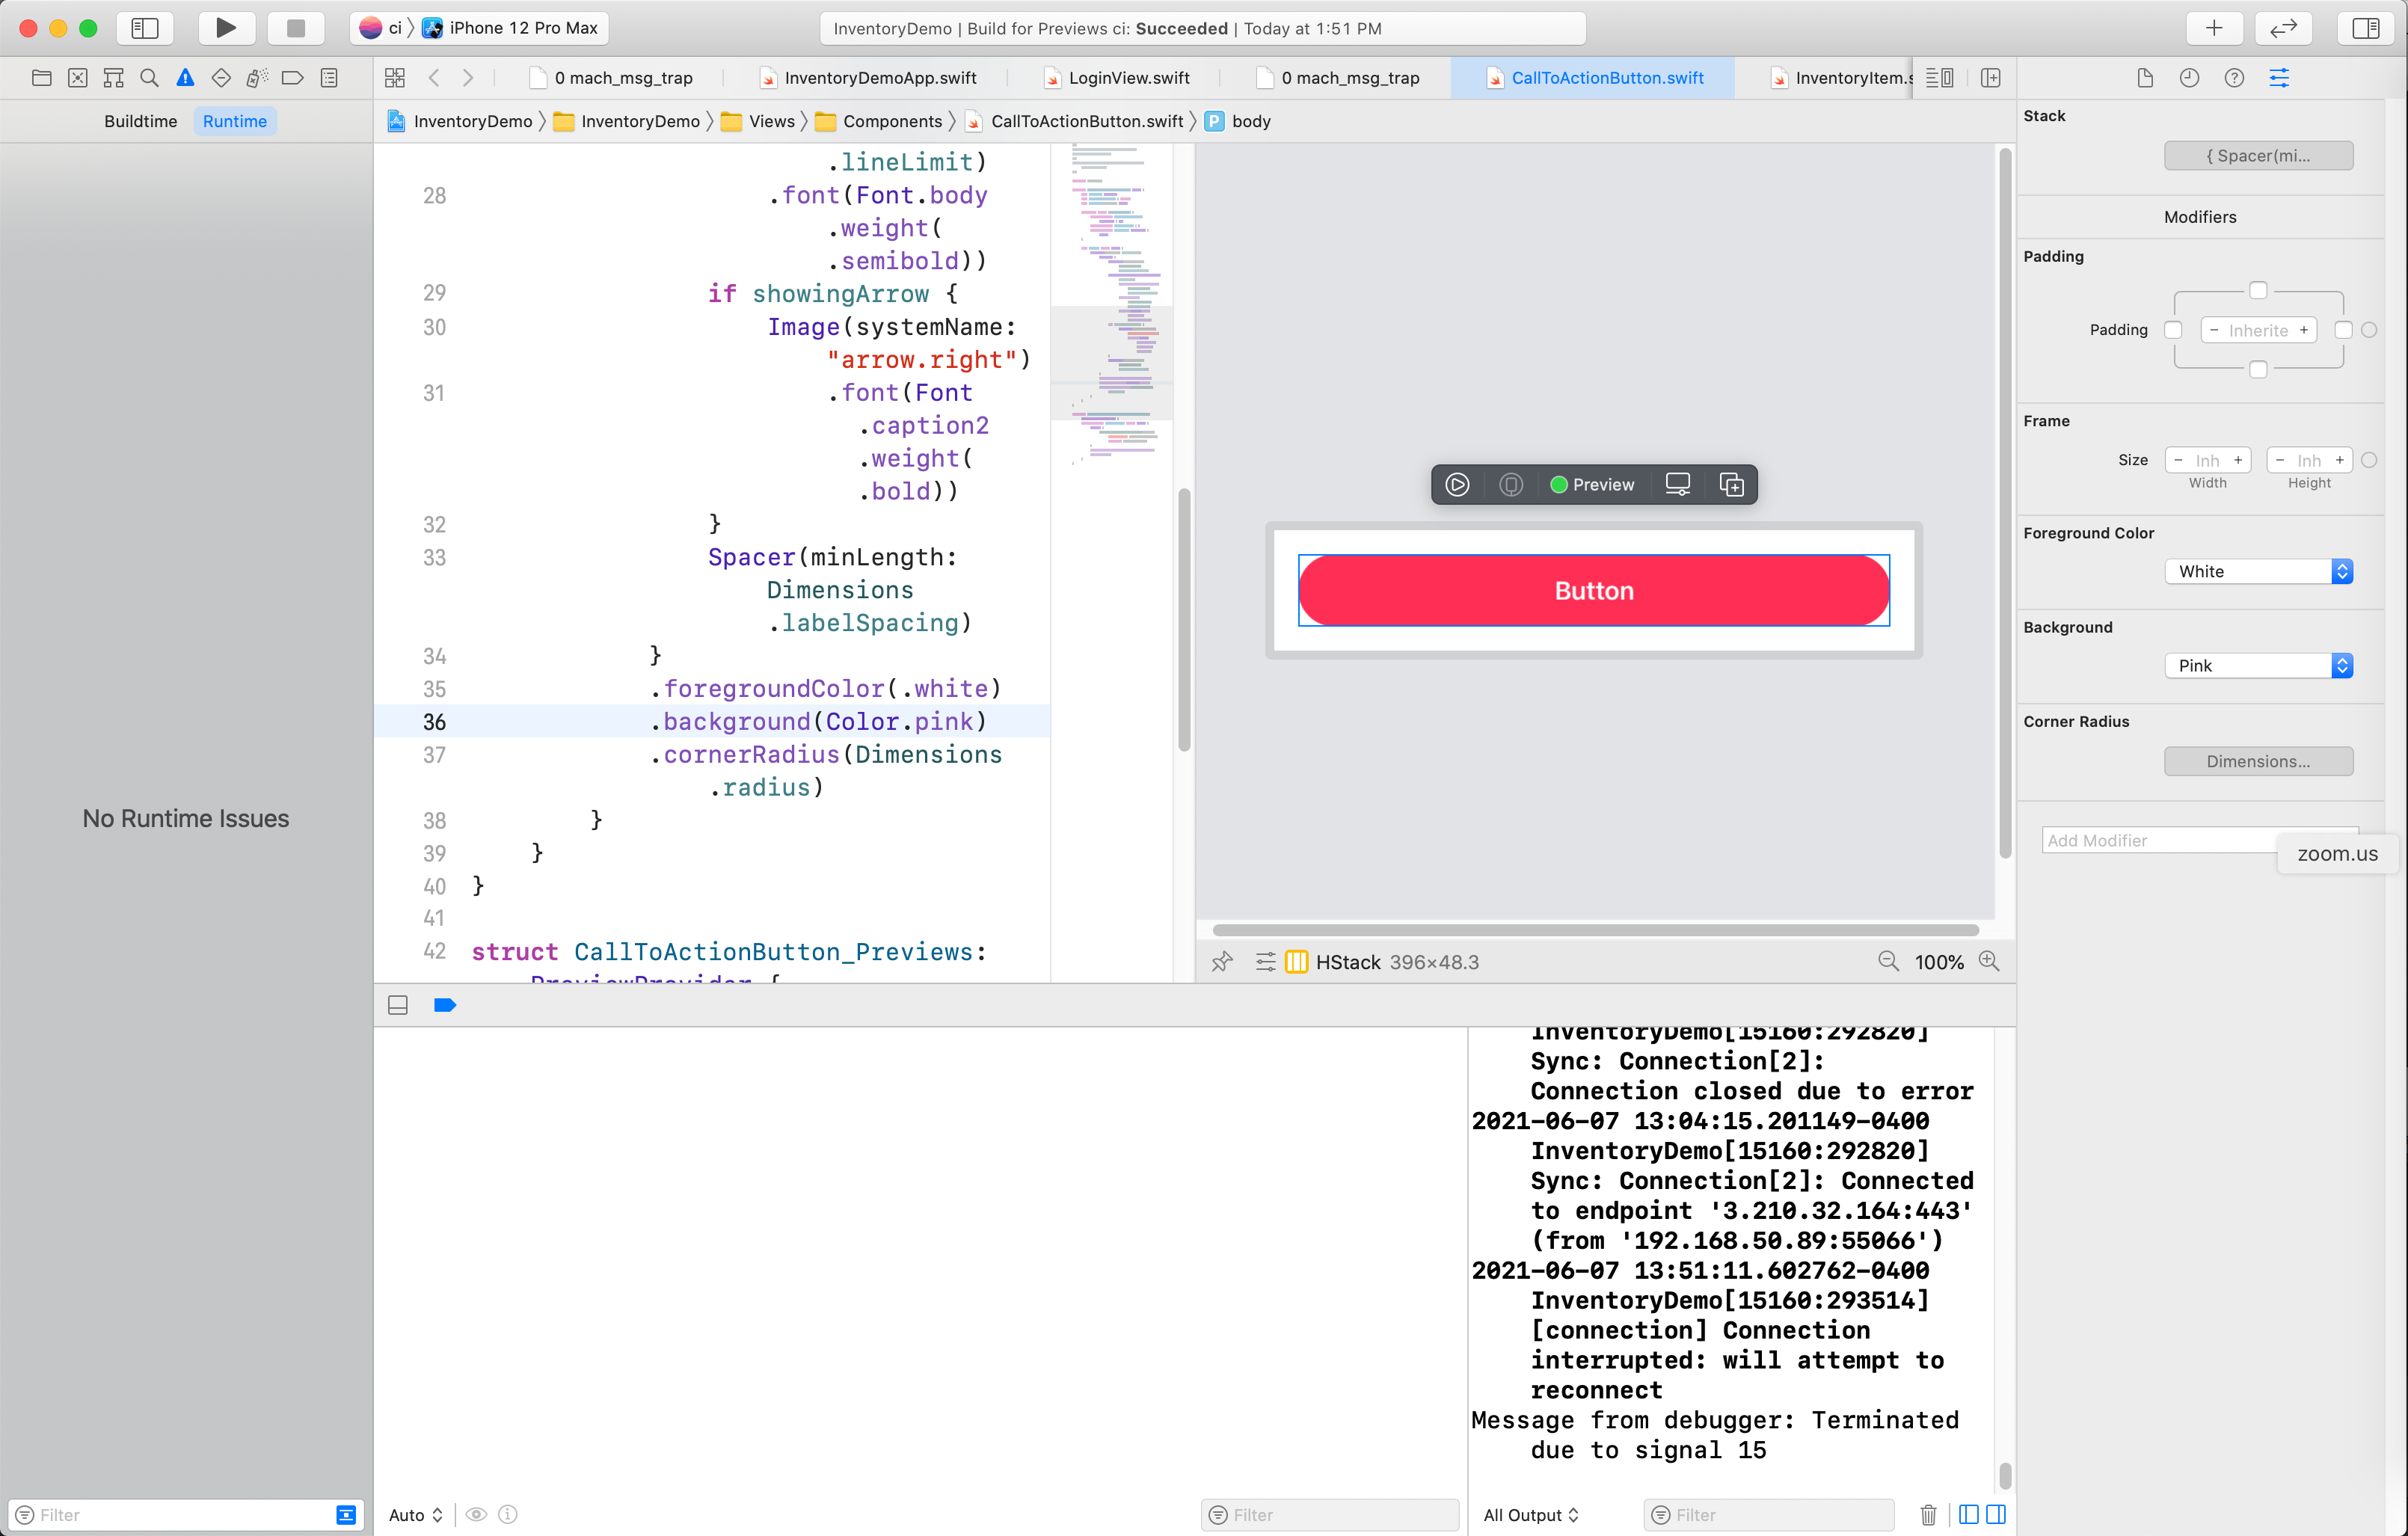 Updating the button color in Xcode